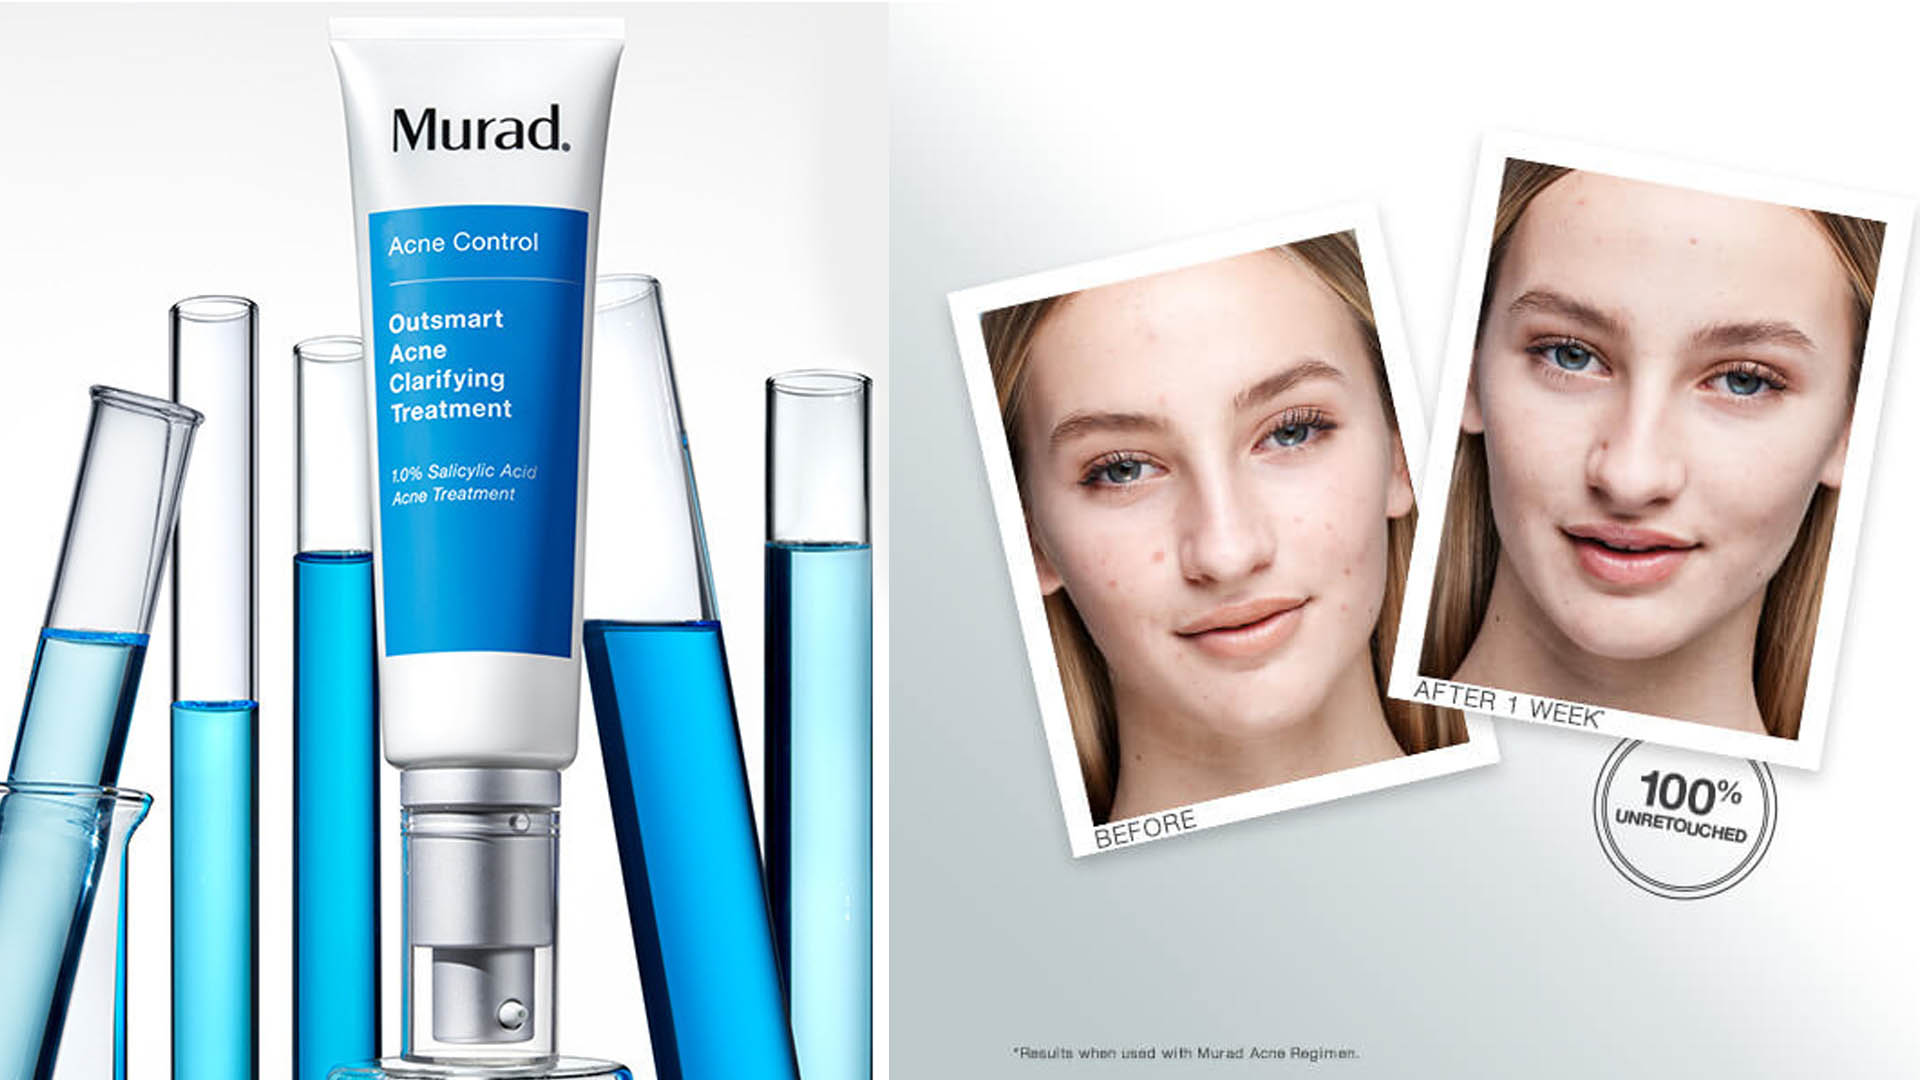 Outsmart Acne Clarifying Treatment Is One Of 4 Life Changing Skin Care Products